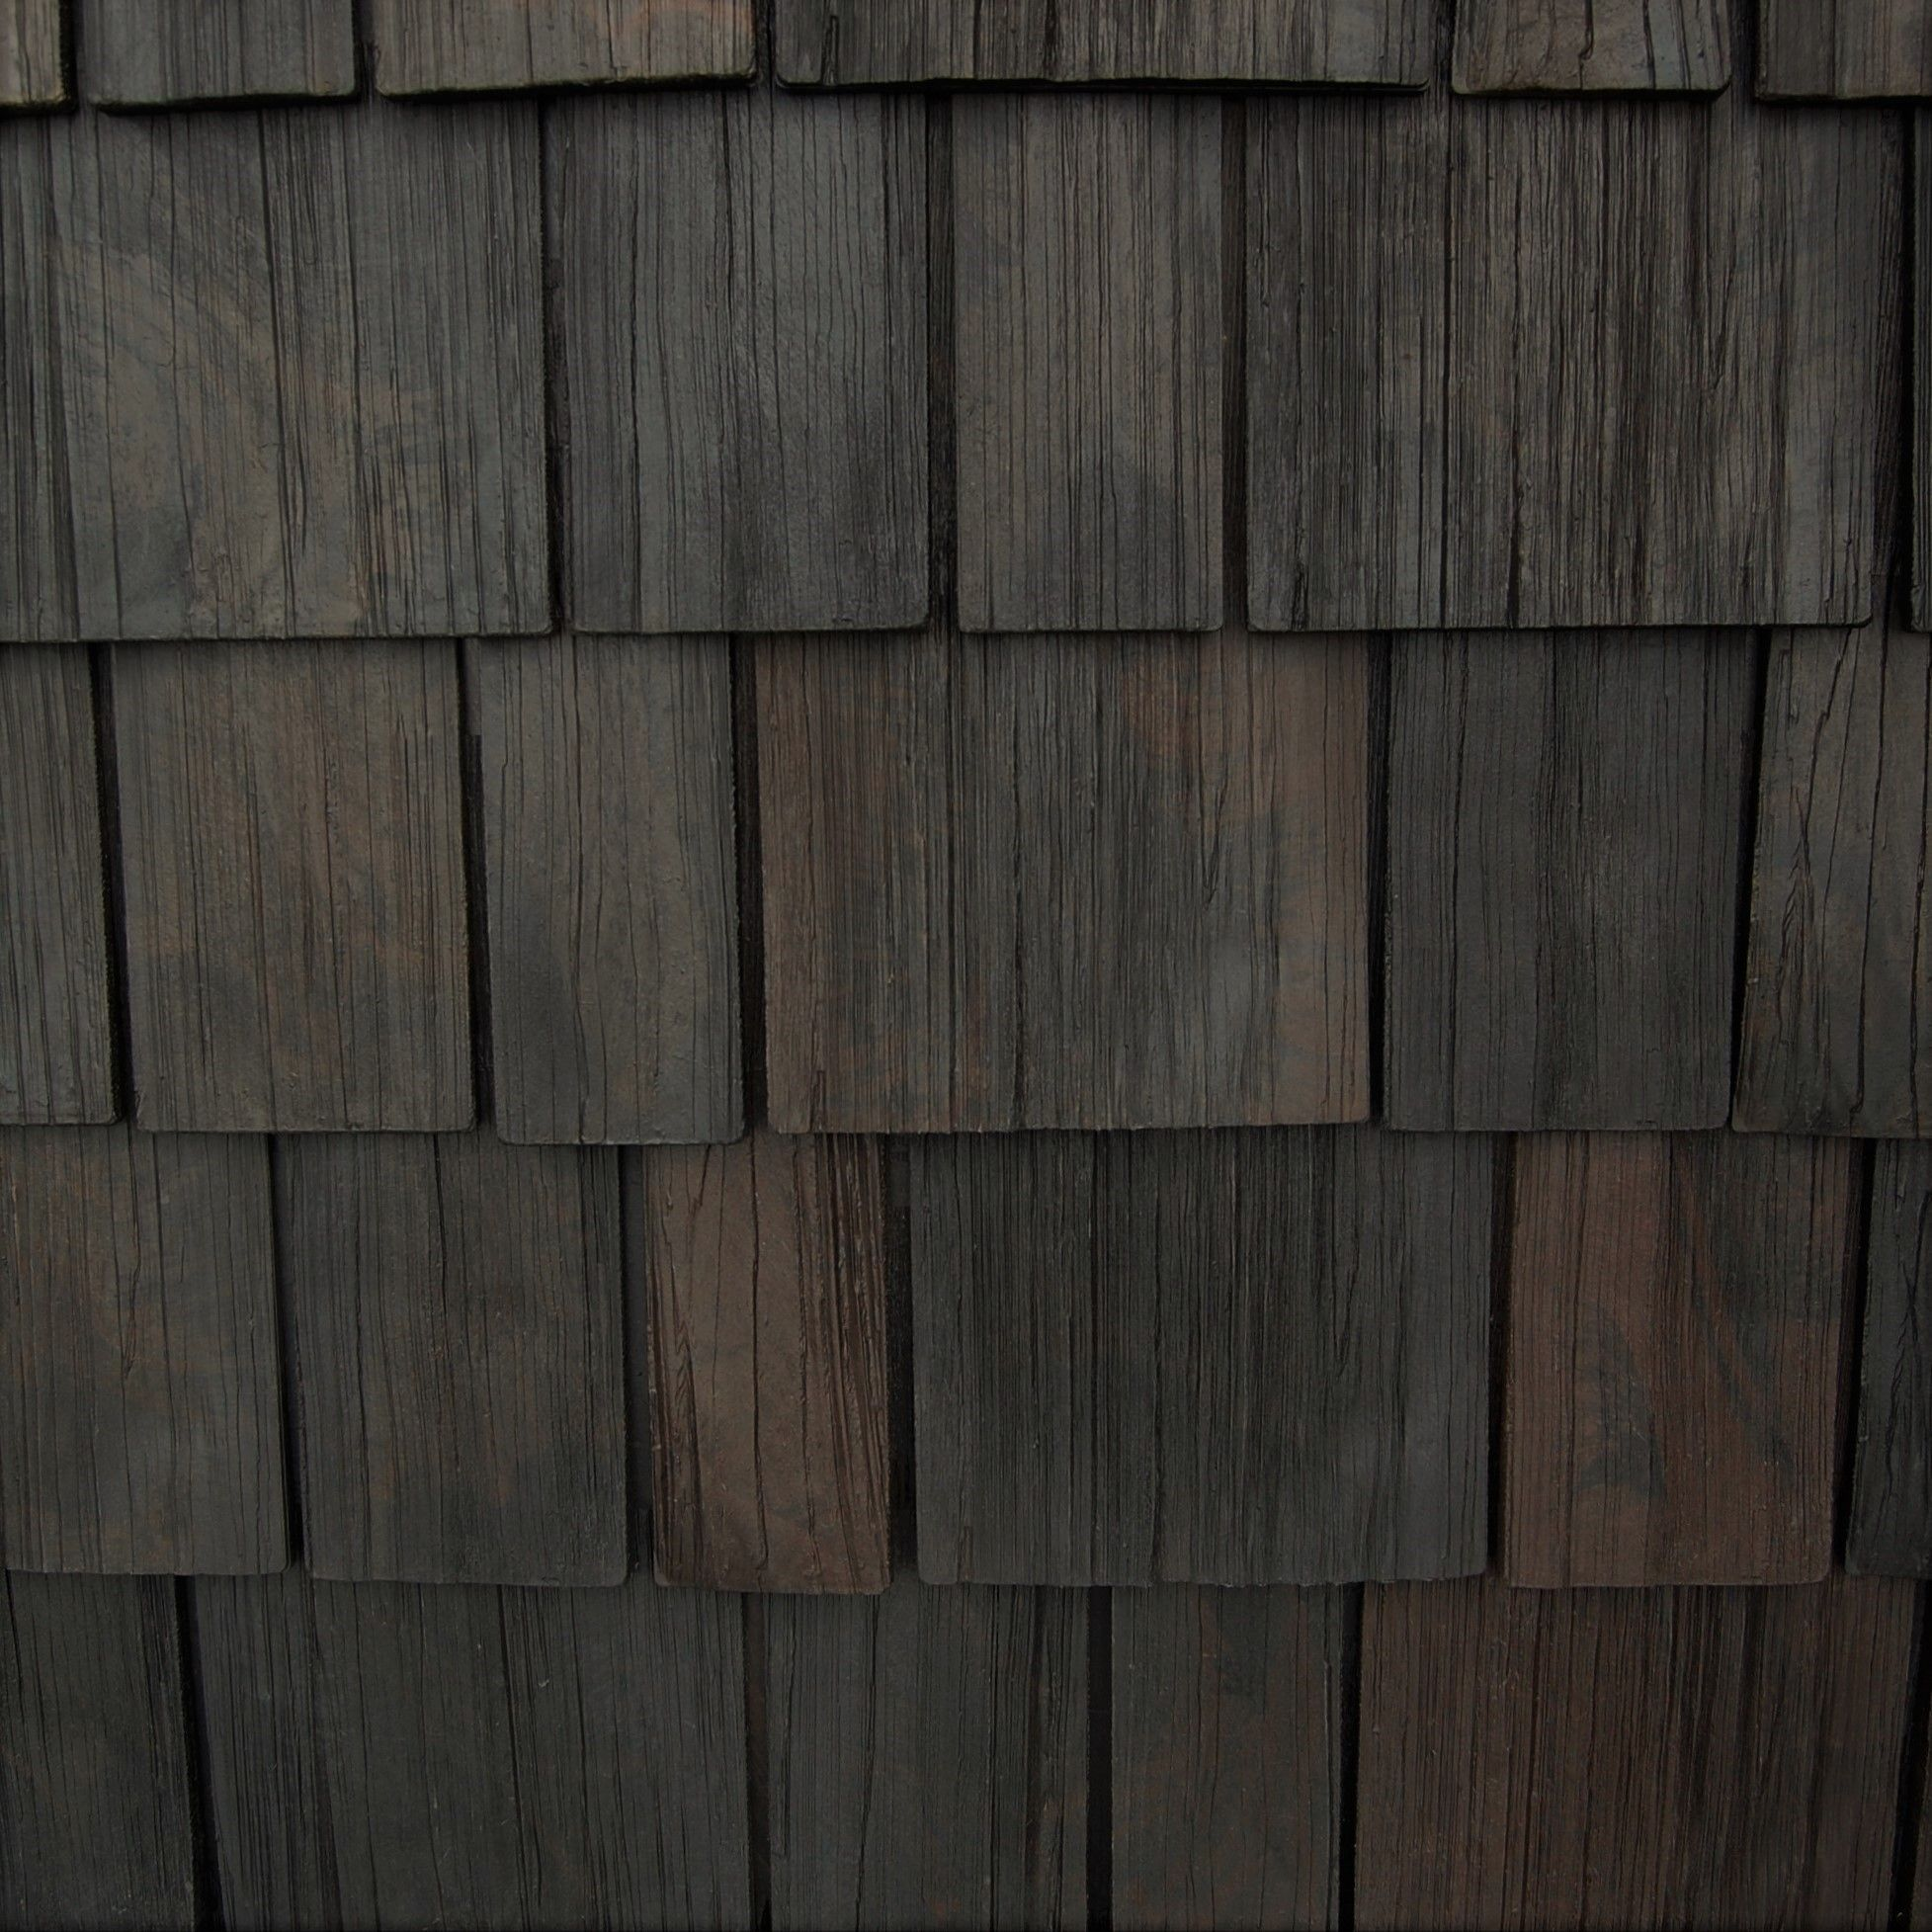 Best 1 Synthetic Shake Roofing Best Composite Cedar Shake Shingles Styles And Colors In 2019 400 x 300